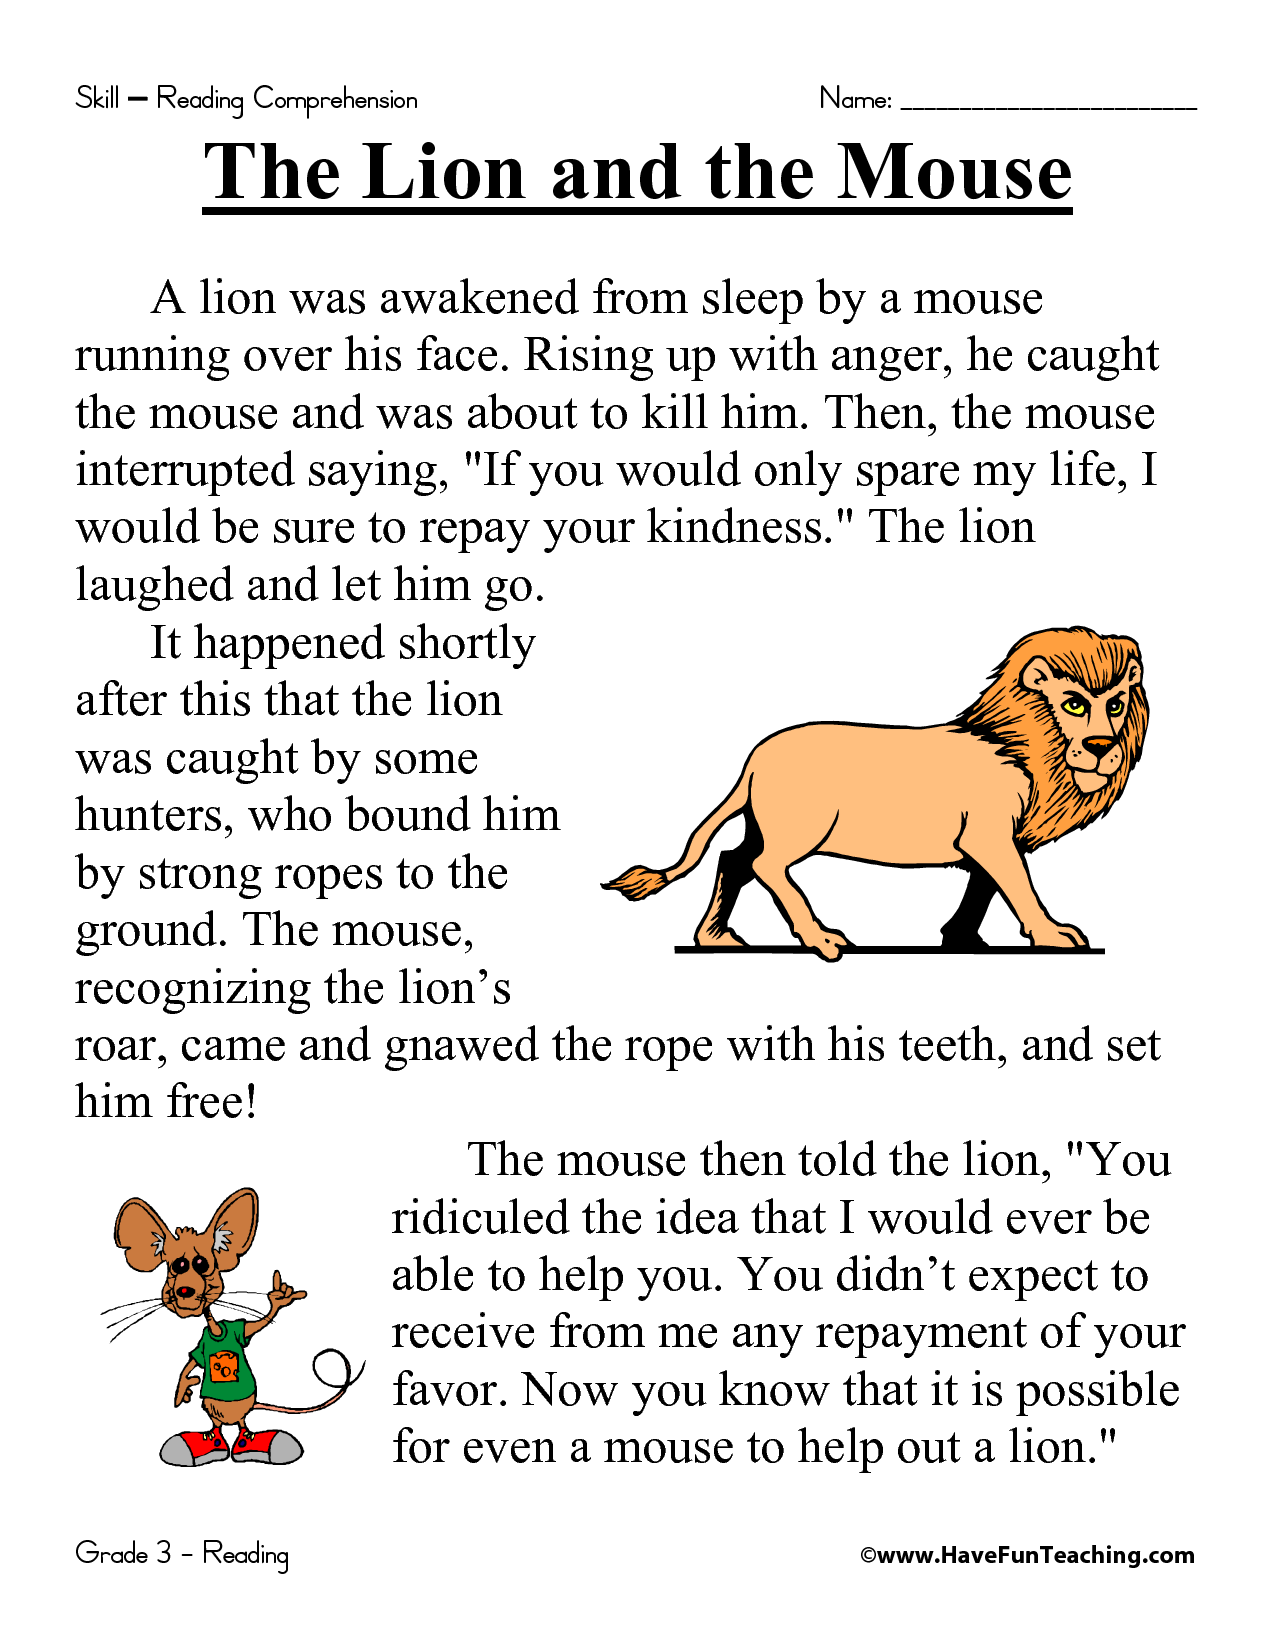 Worksheet Reading And Comprehension Exercises first grade reading comprehension worksheets the lion and mouse worksheet